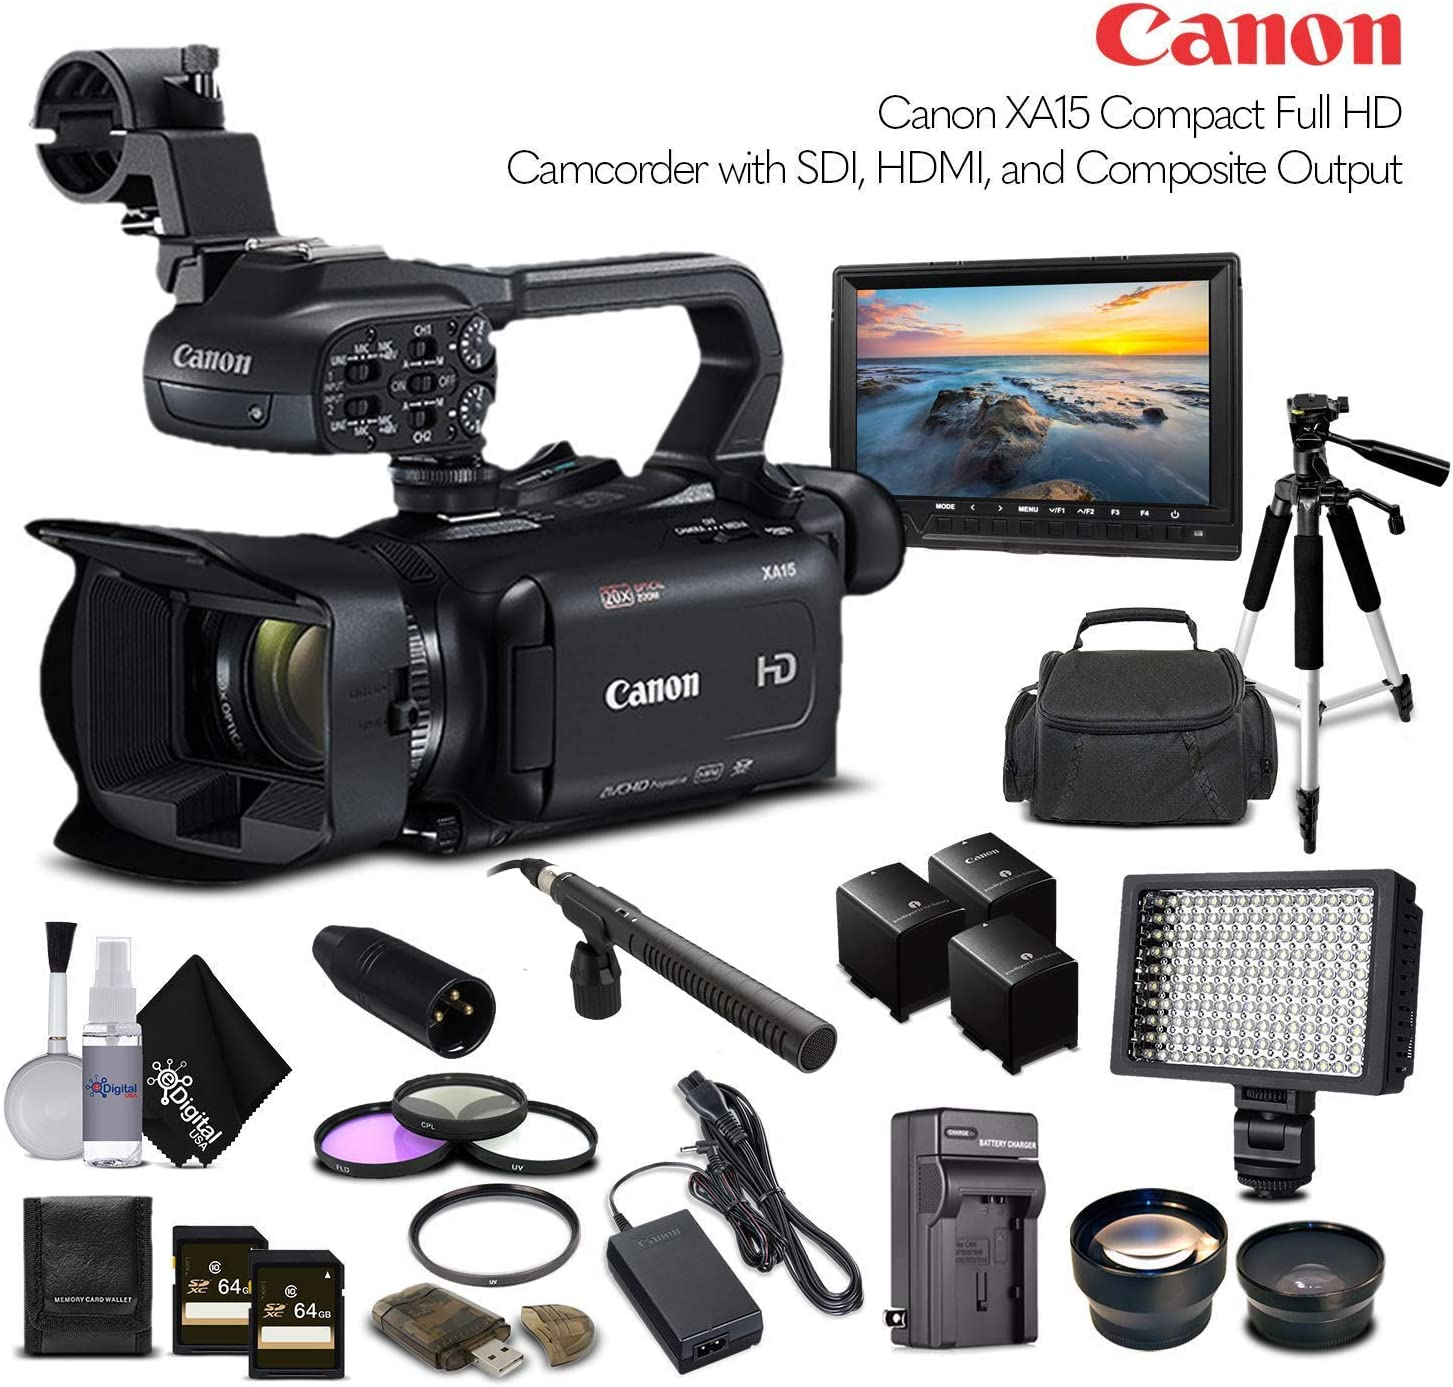 Professional Bundle Case LED Light Canon XA15 Compact Full HD Camcorder 2217C002 with 2-64GB Cards Tripod 2 Extra Batteries and Charger Screen and Sony MDR-7506 Headphones Rode VM-GO Mic